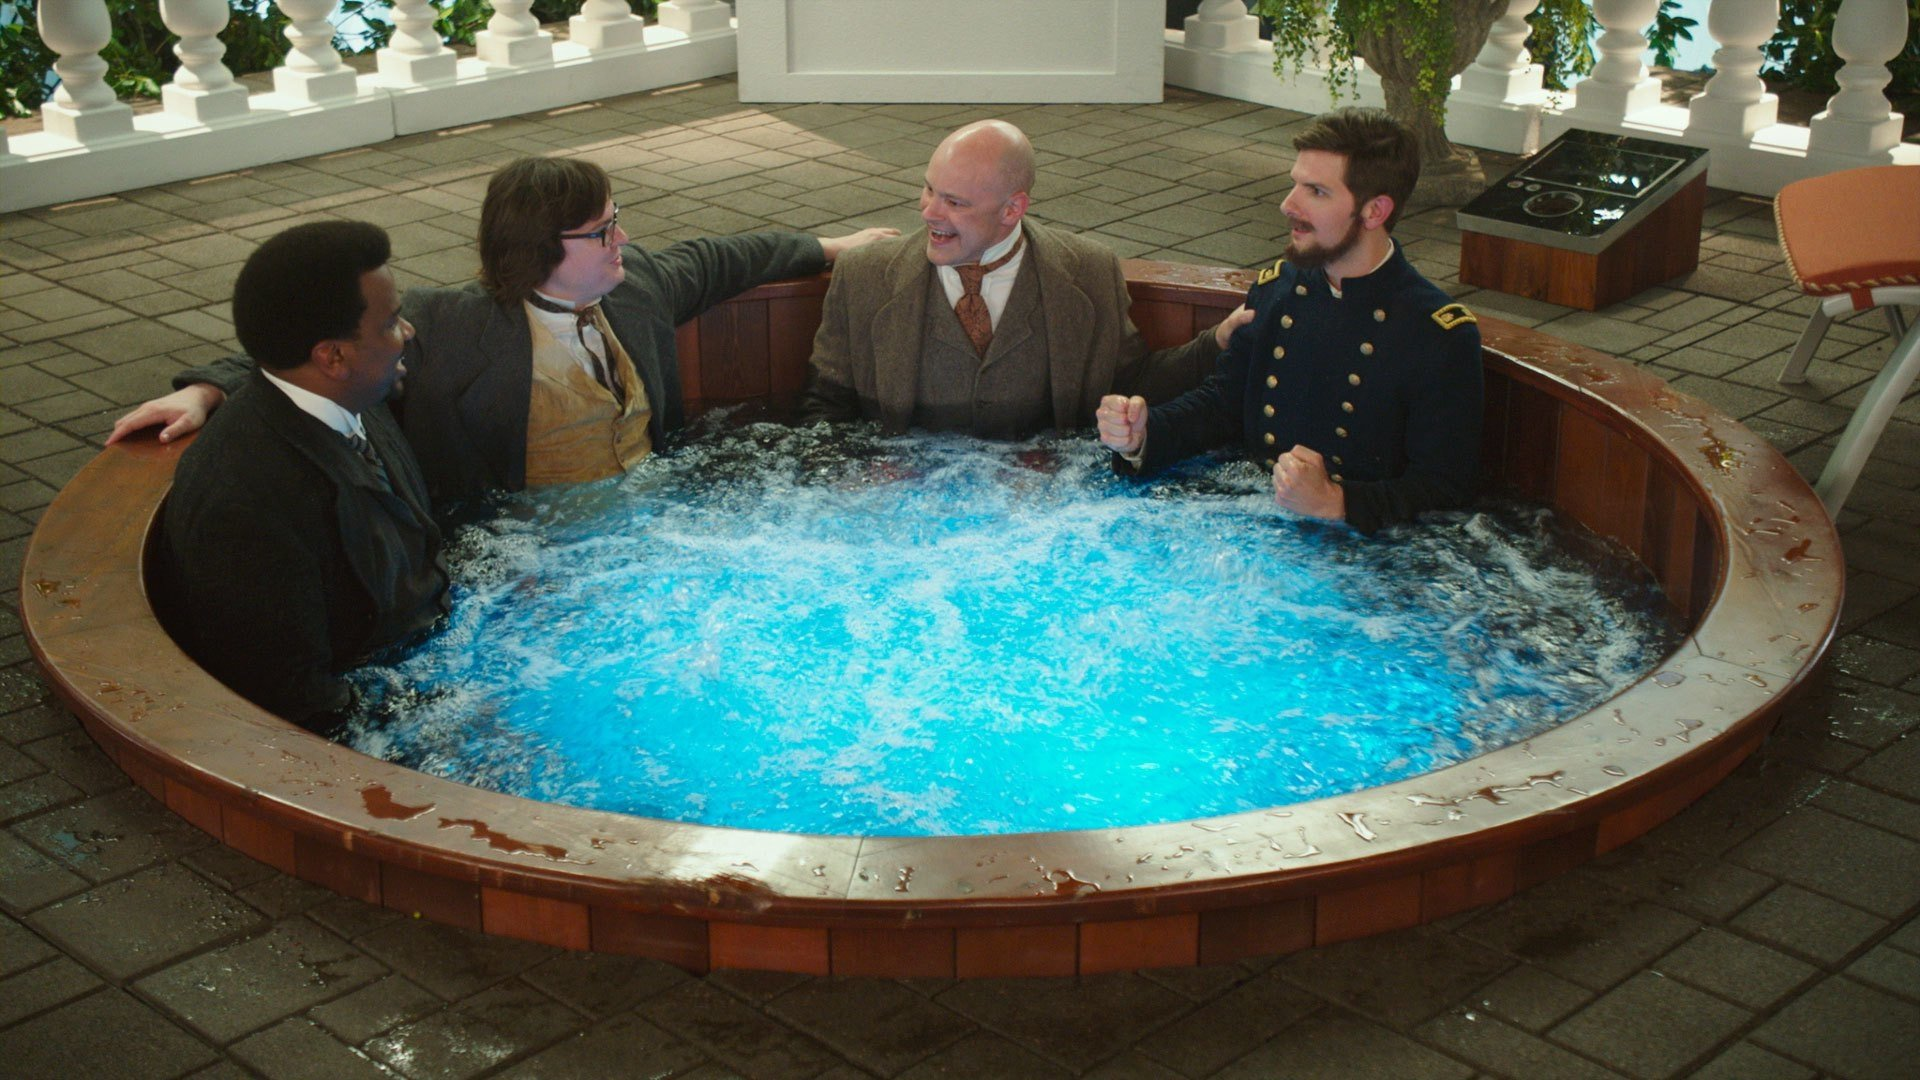 Hot Tub Time Machine 2 Wallpaper 16   1920 X 1080 stmednet 1920x1080